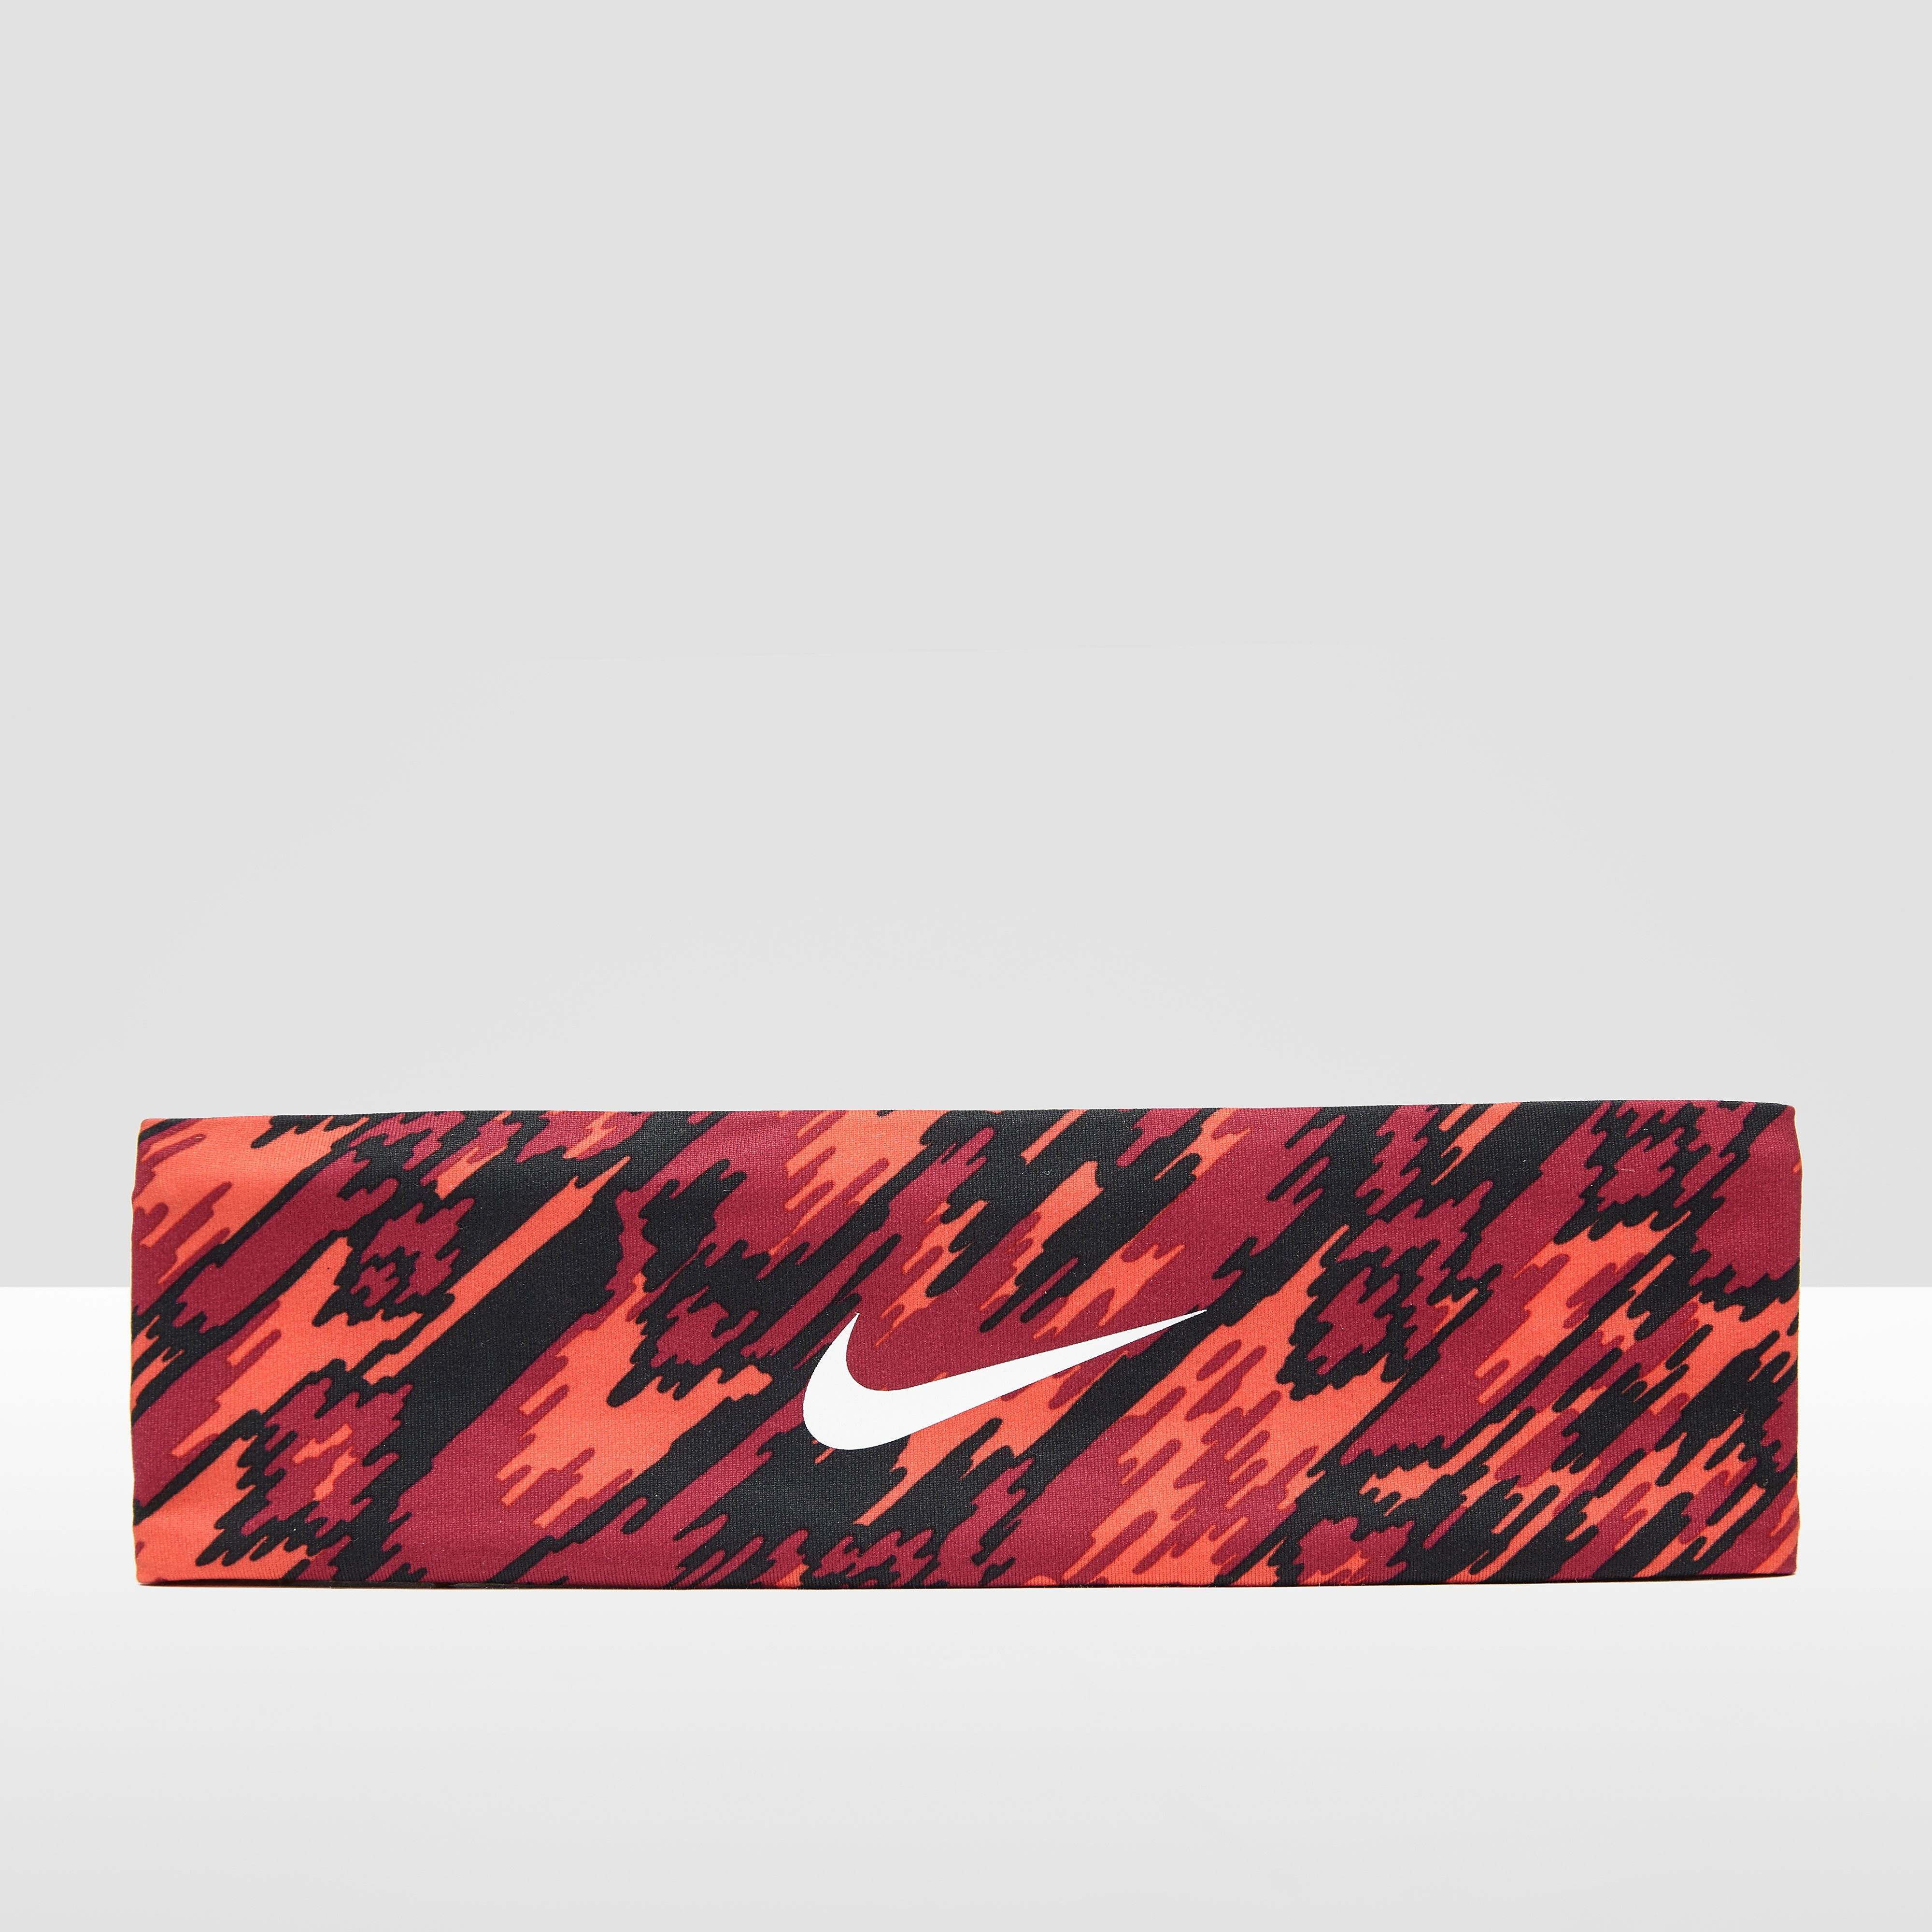 Nike FURY HEADBAND 2.0 LT